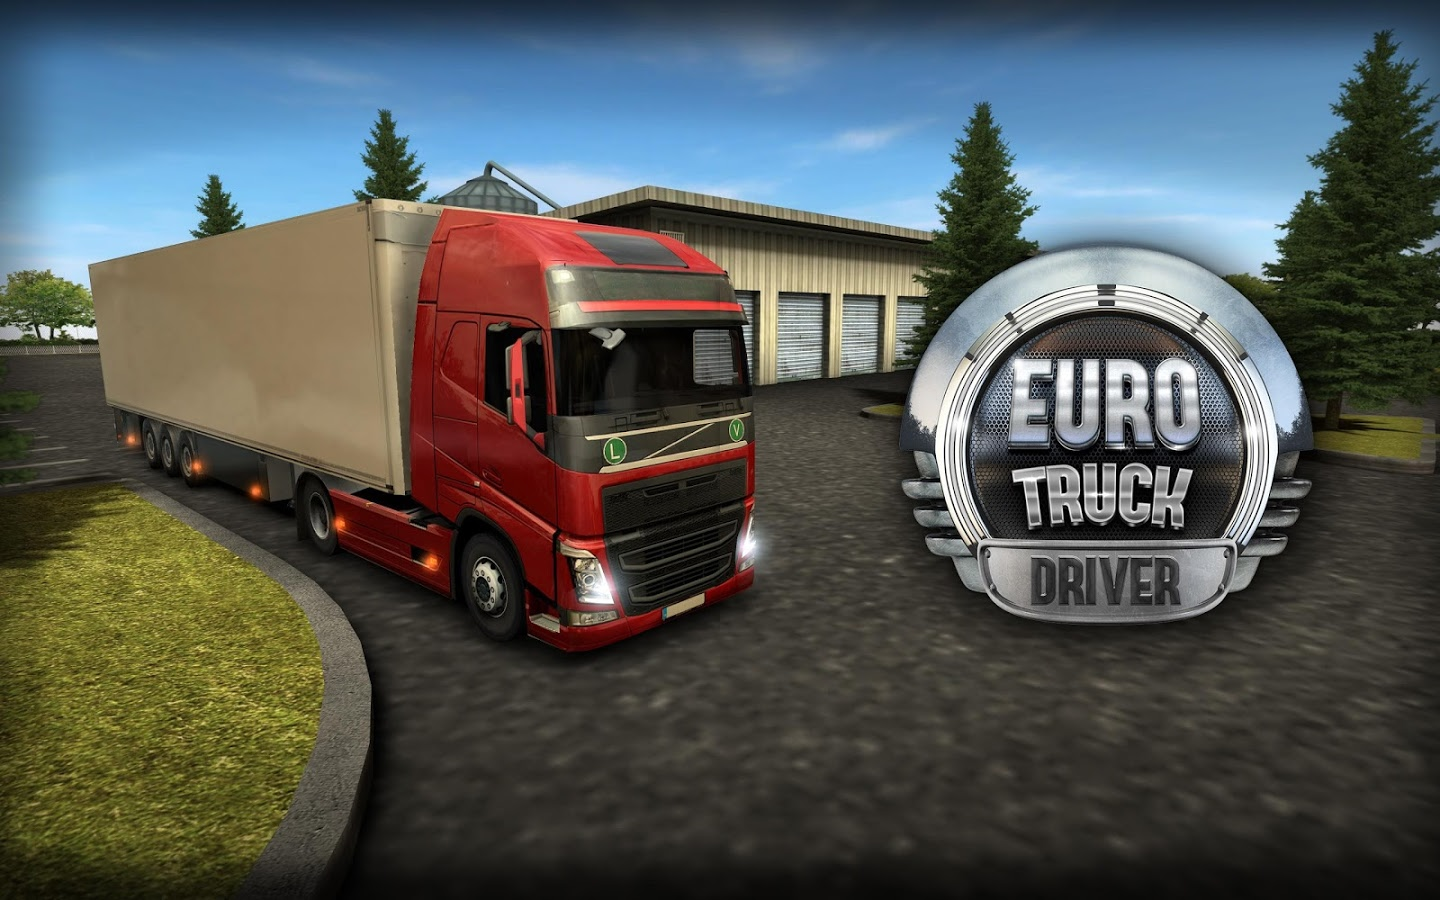 Euro Truck Driver (Simulator) Android Gameplay